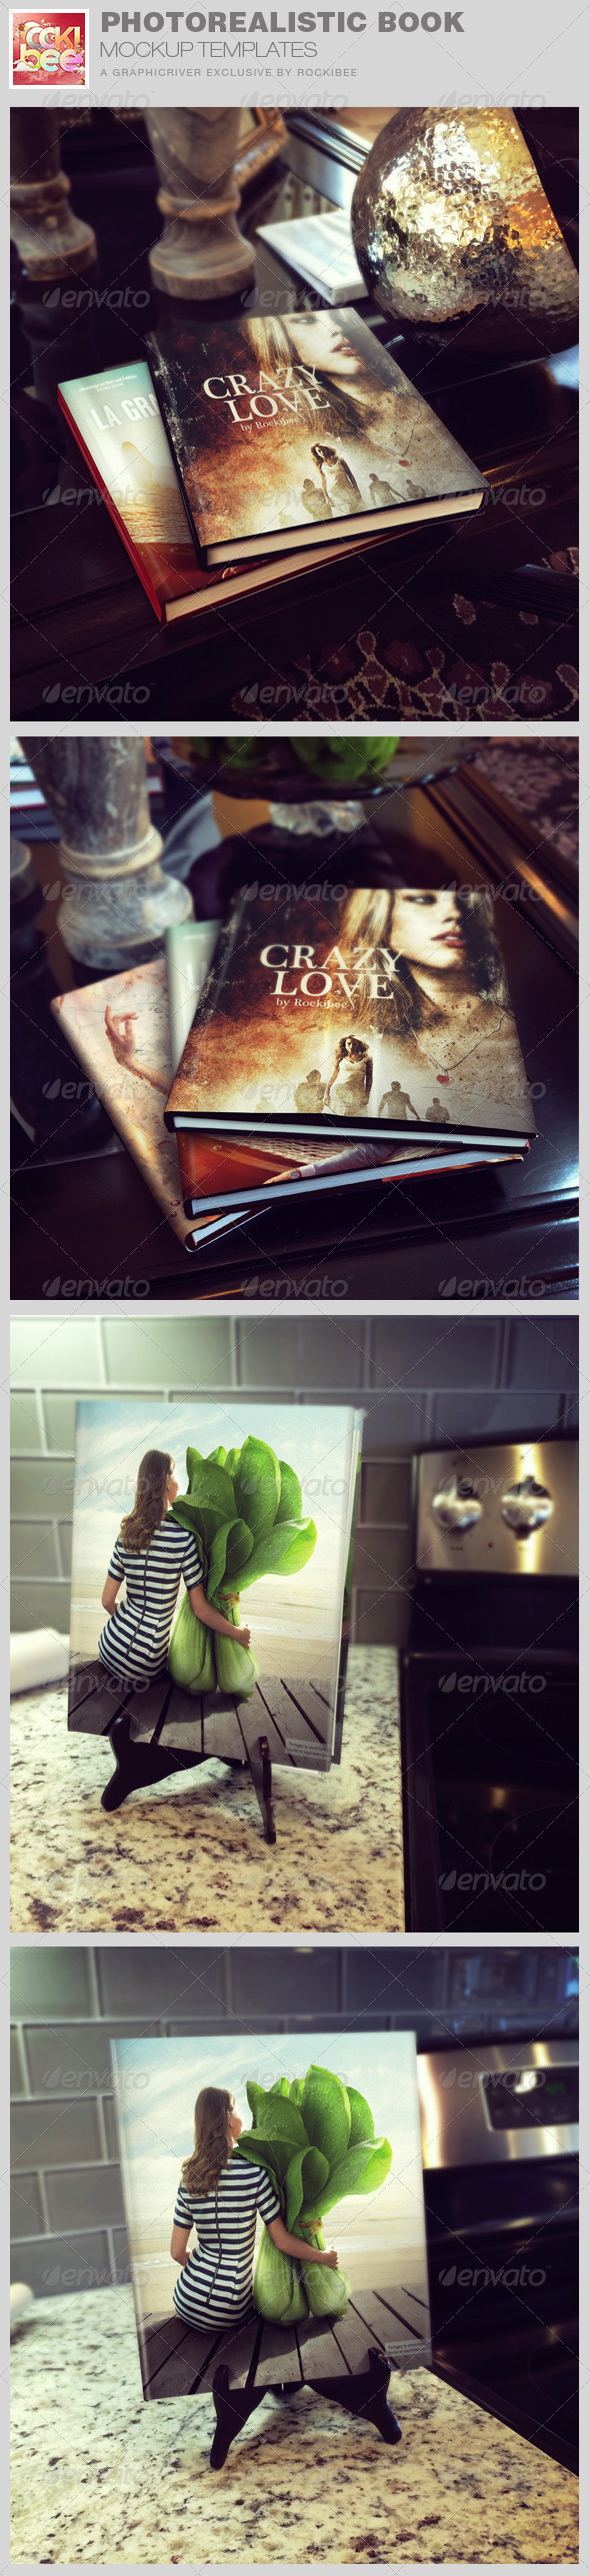 GraphicRiver Photorealistic Book Mockup Templates 8465403